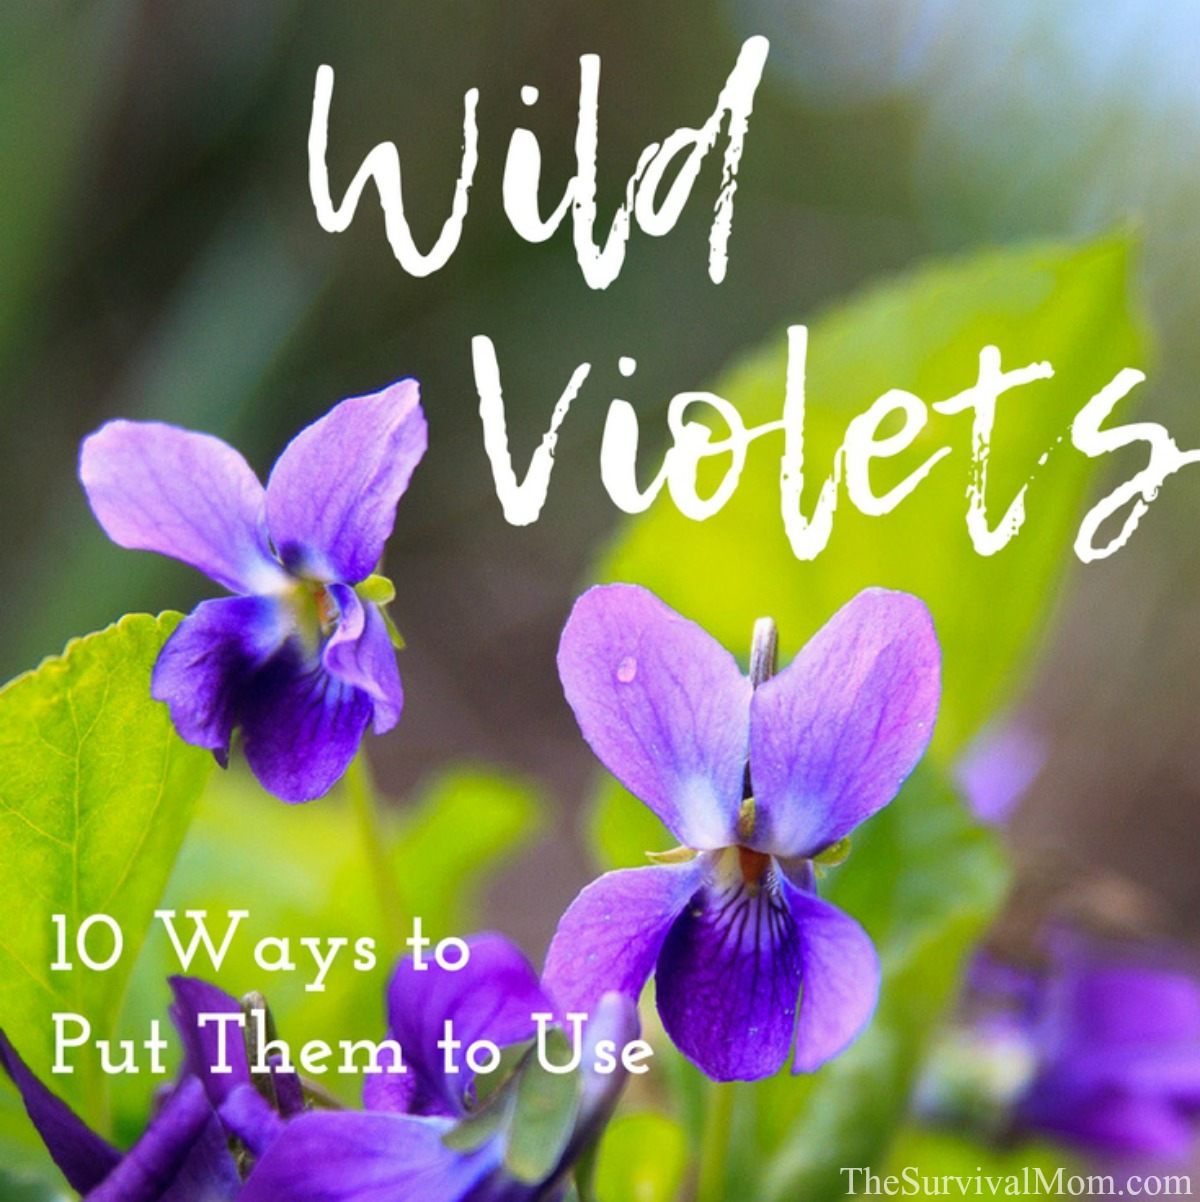 wild violets, wild violet weed,how to use wild violet, wild violet control